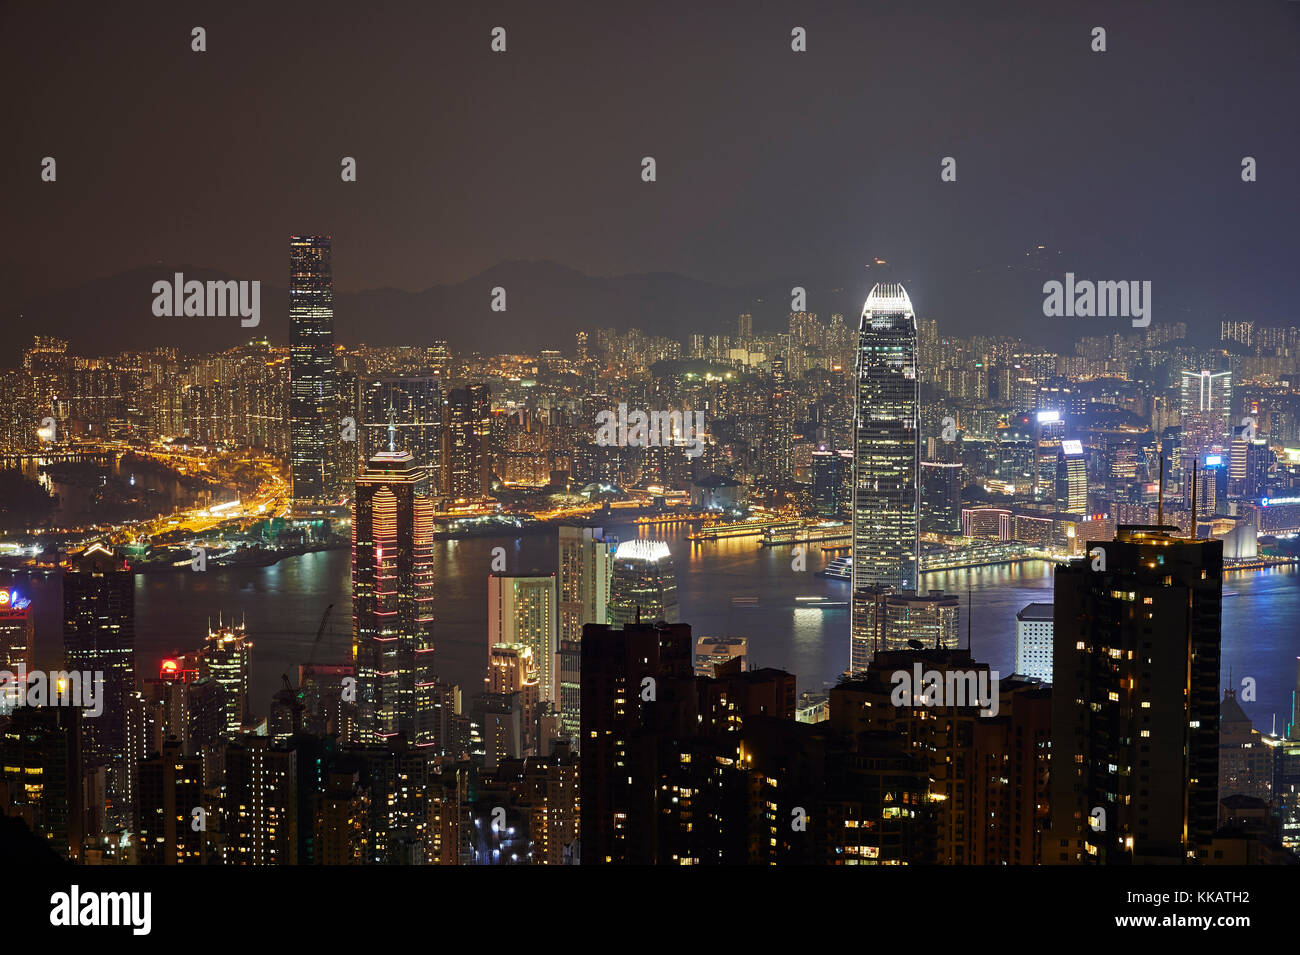 View at night of central Hong Kong and Victoria Harbour from Victoria Peak, looking toward Kowloon in background, - Stock Image